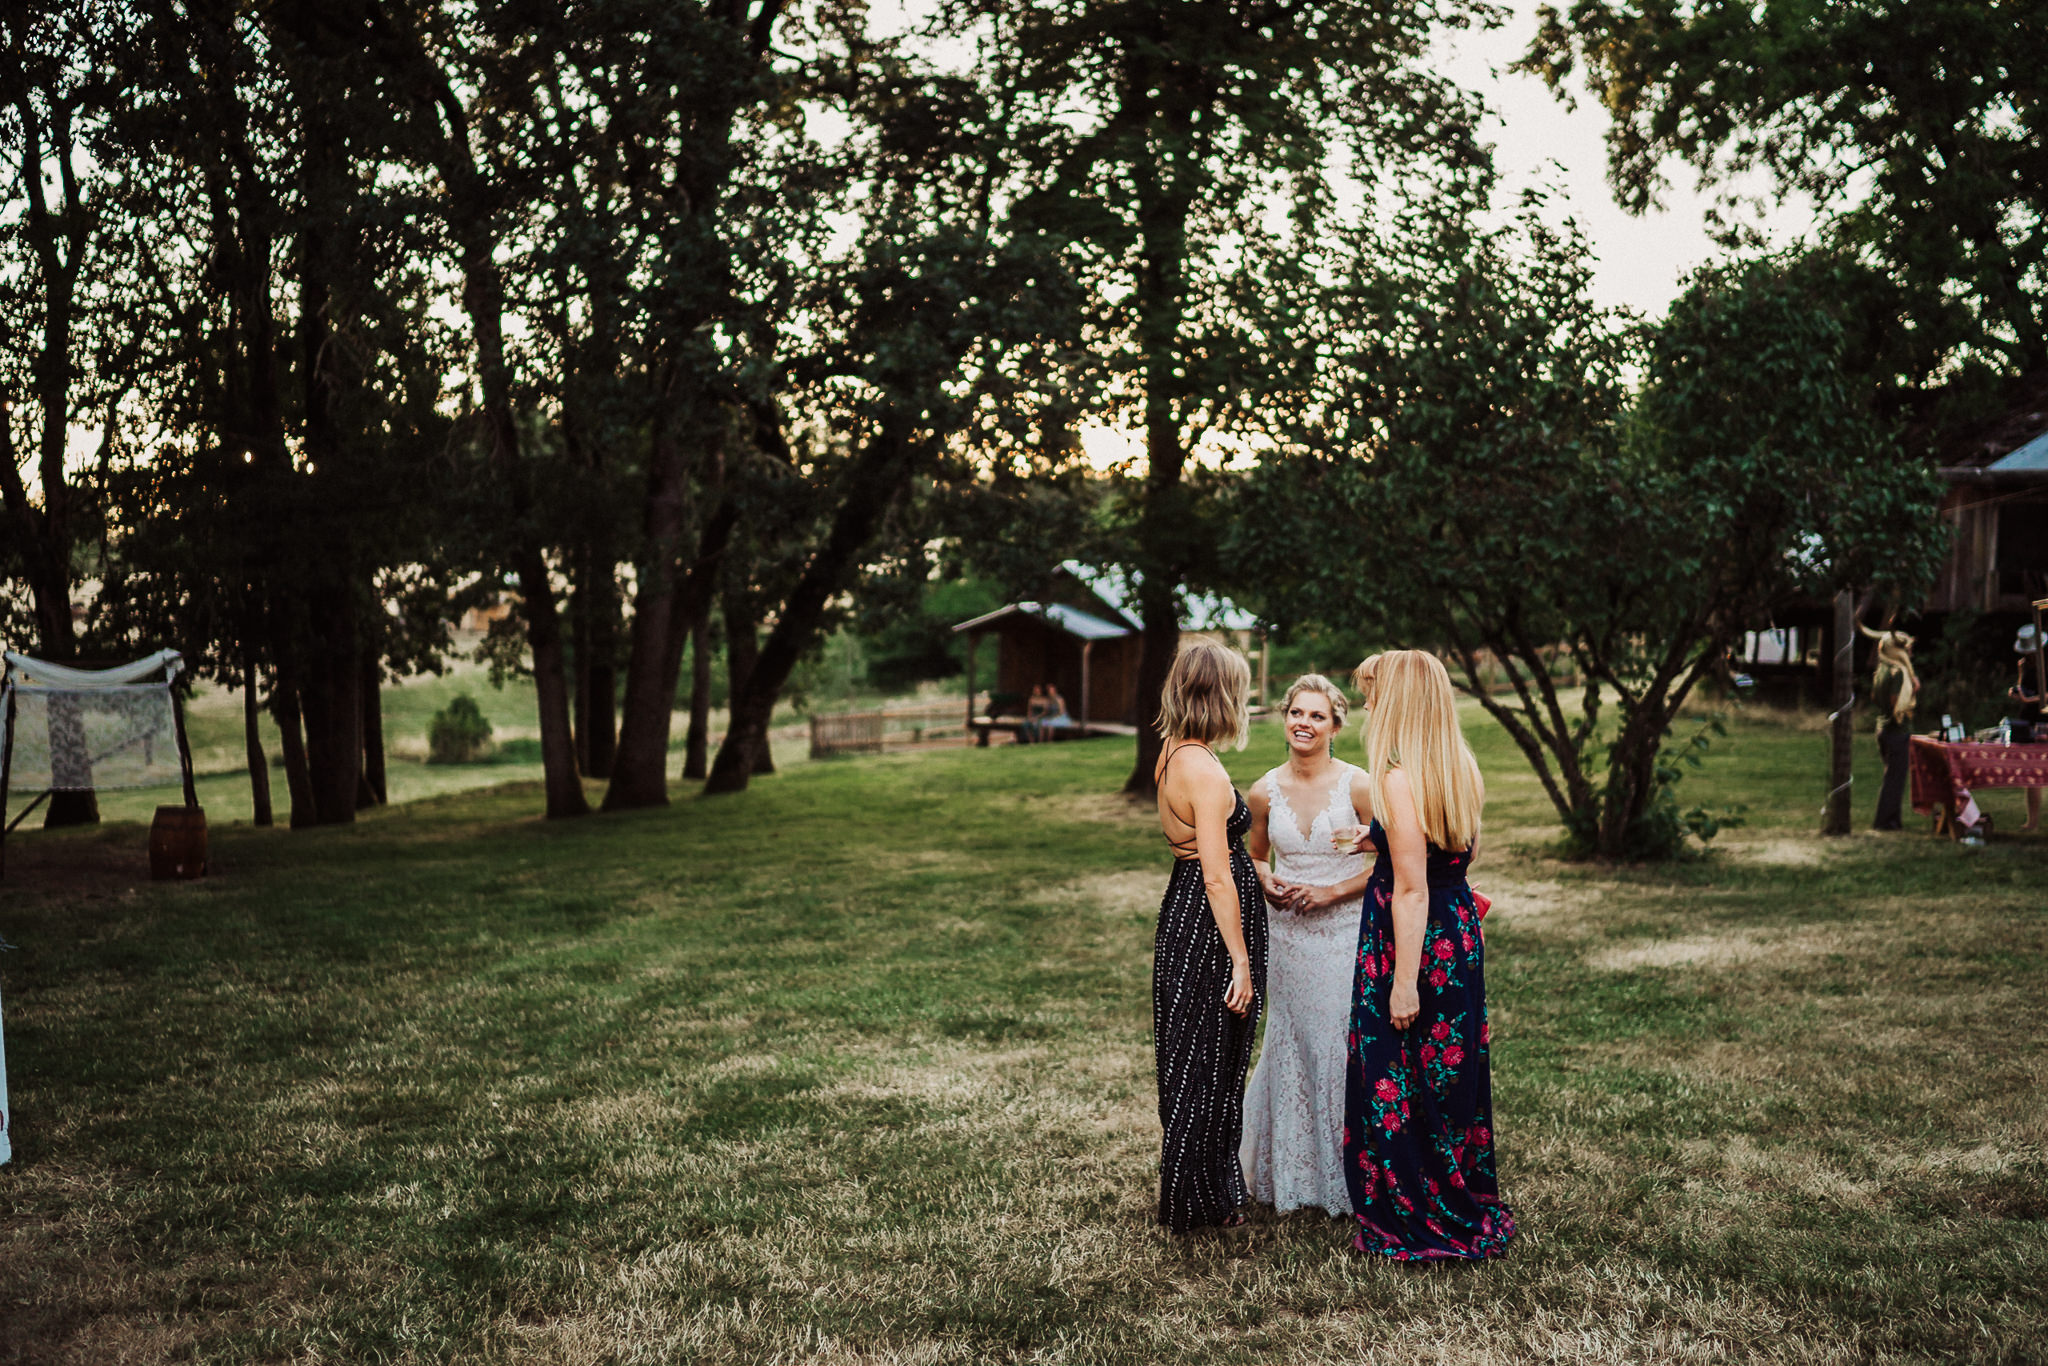 Summerhill-Farms-Portland-Wedding-Photographer-Backyard-Vineyard-95.jpg